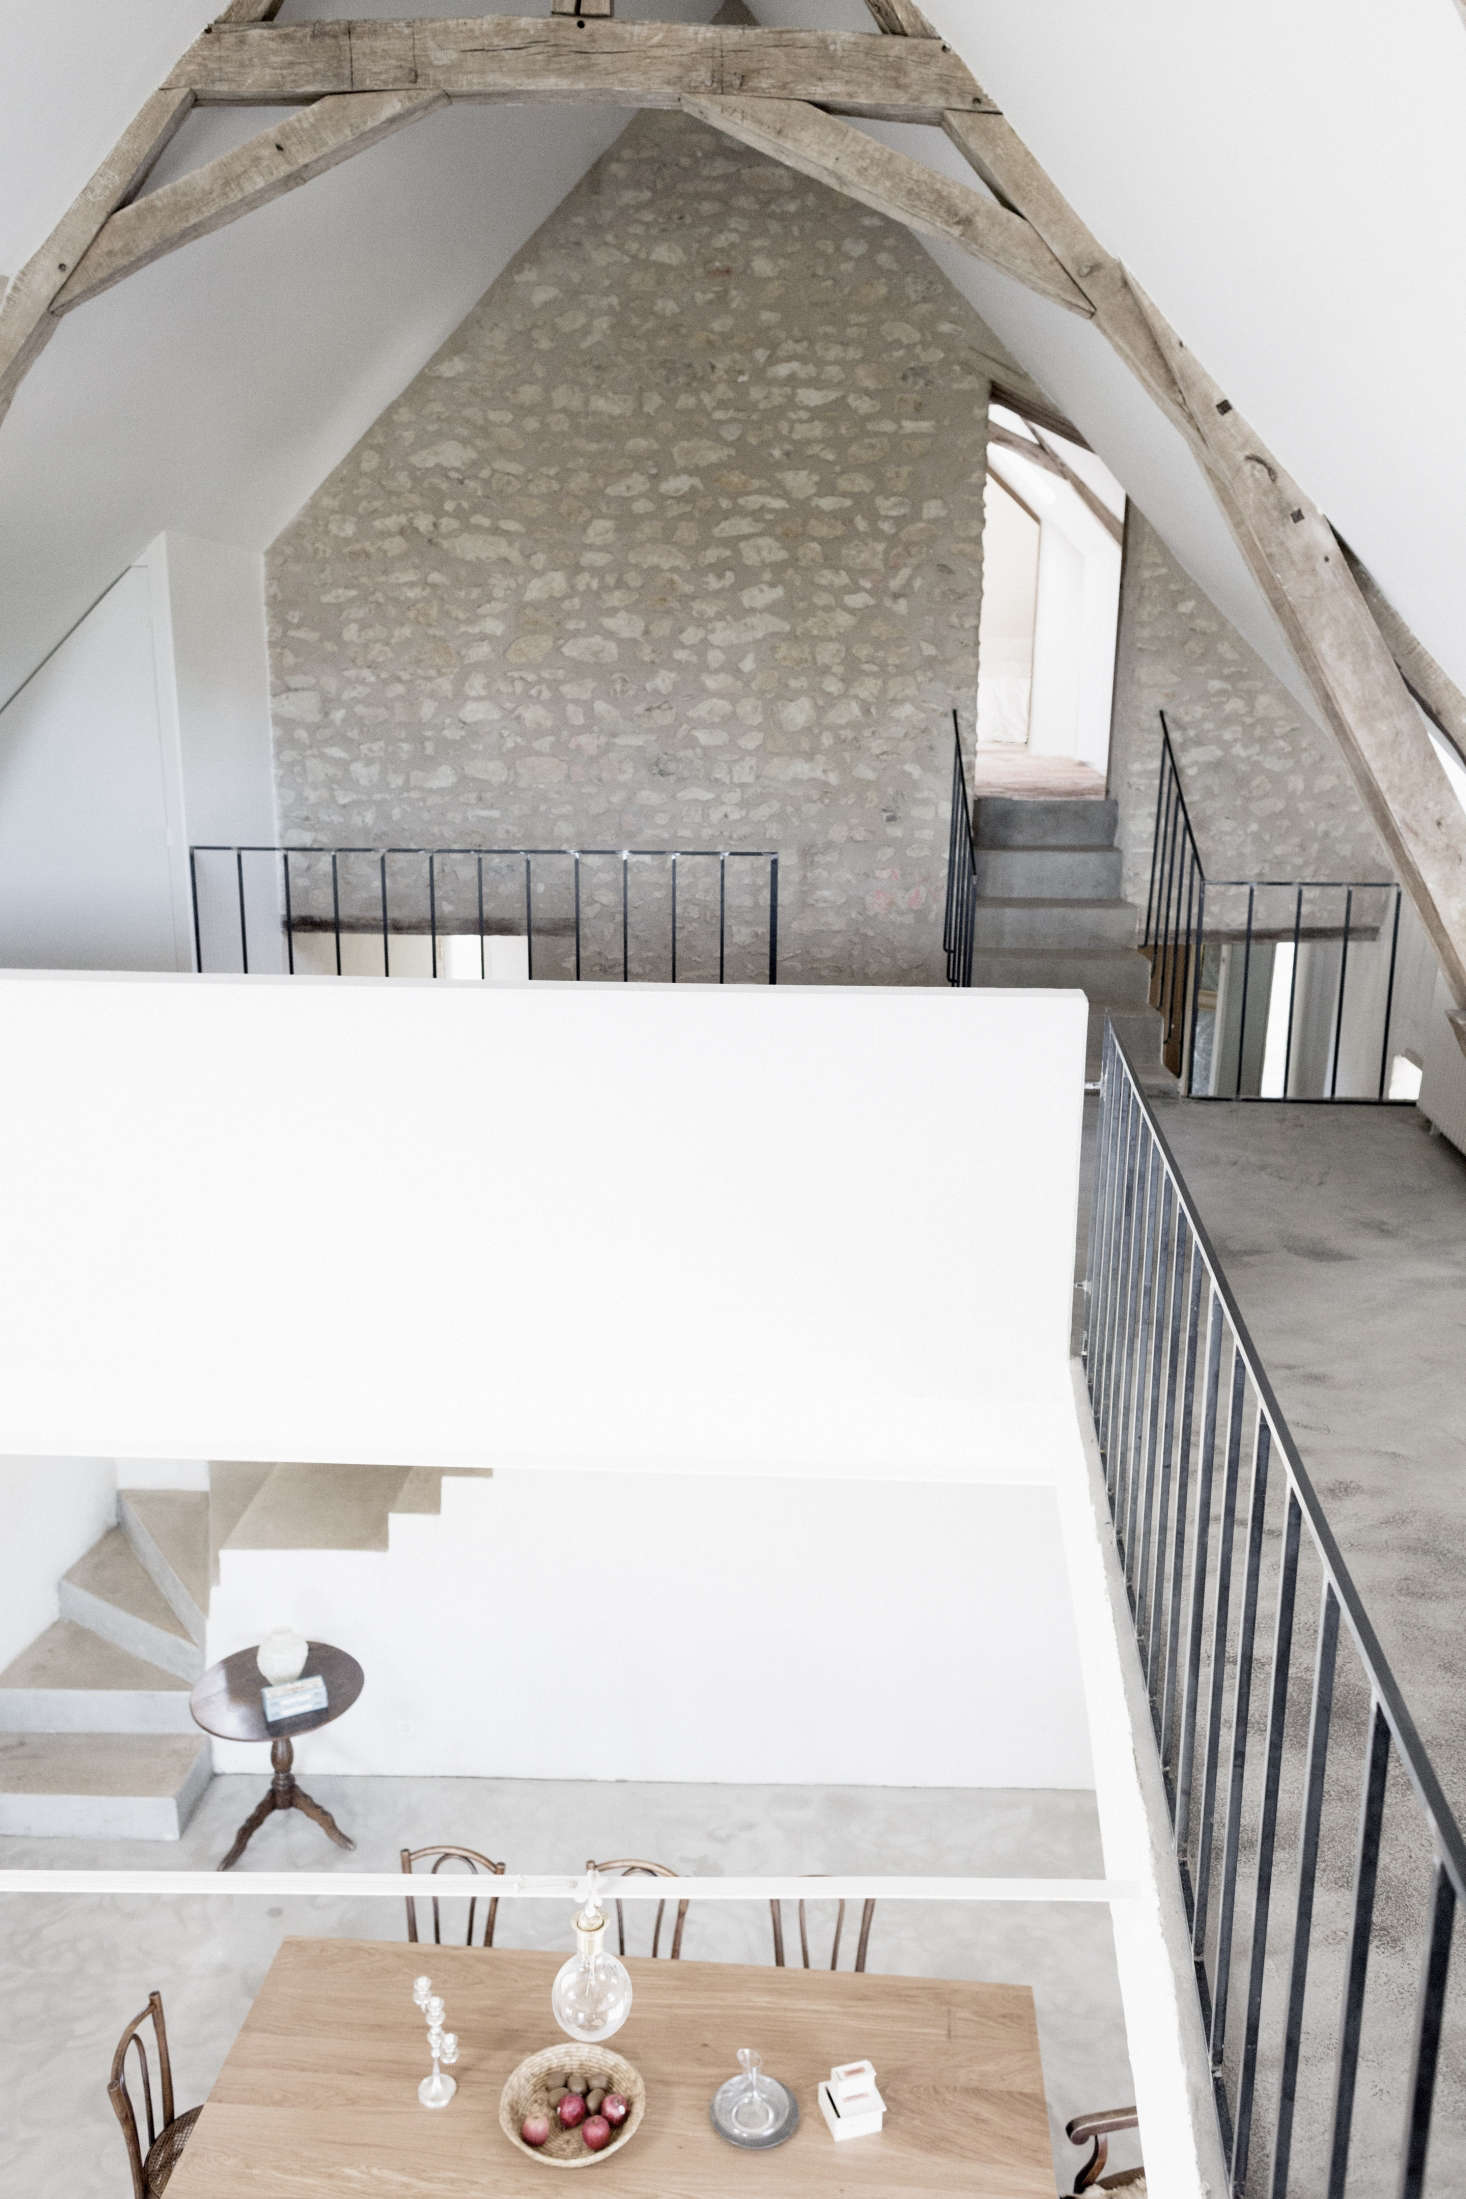 On the mezzanine, the simple, lightweight detailing of the metal rails contrasts with the heavy wood beams and stone walls of the original house.